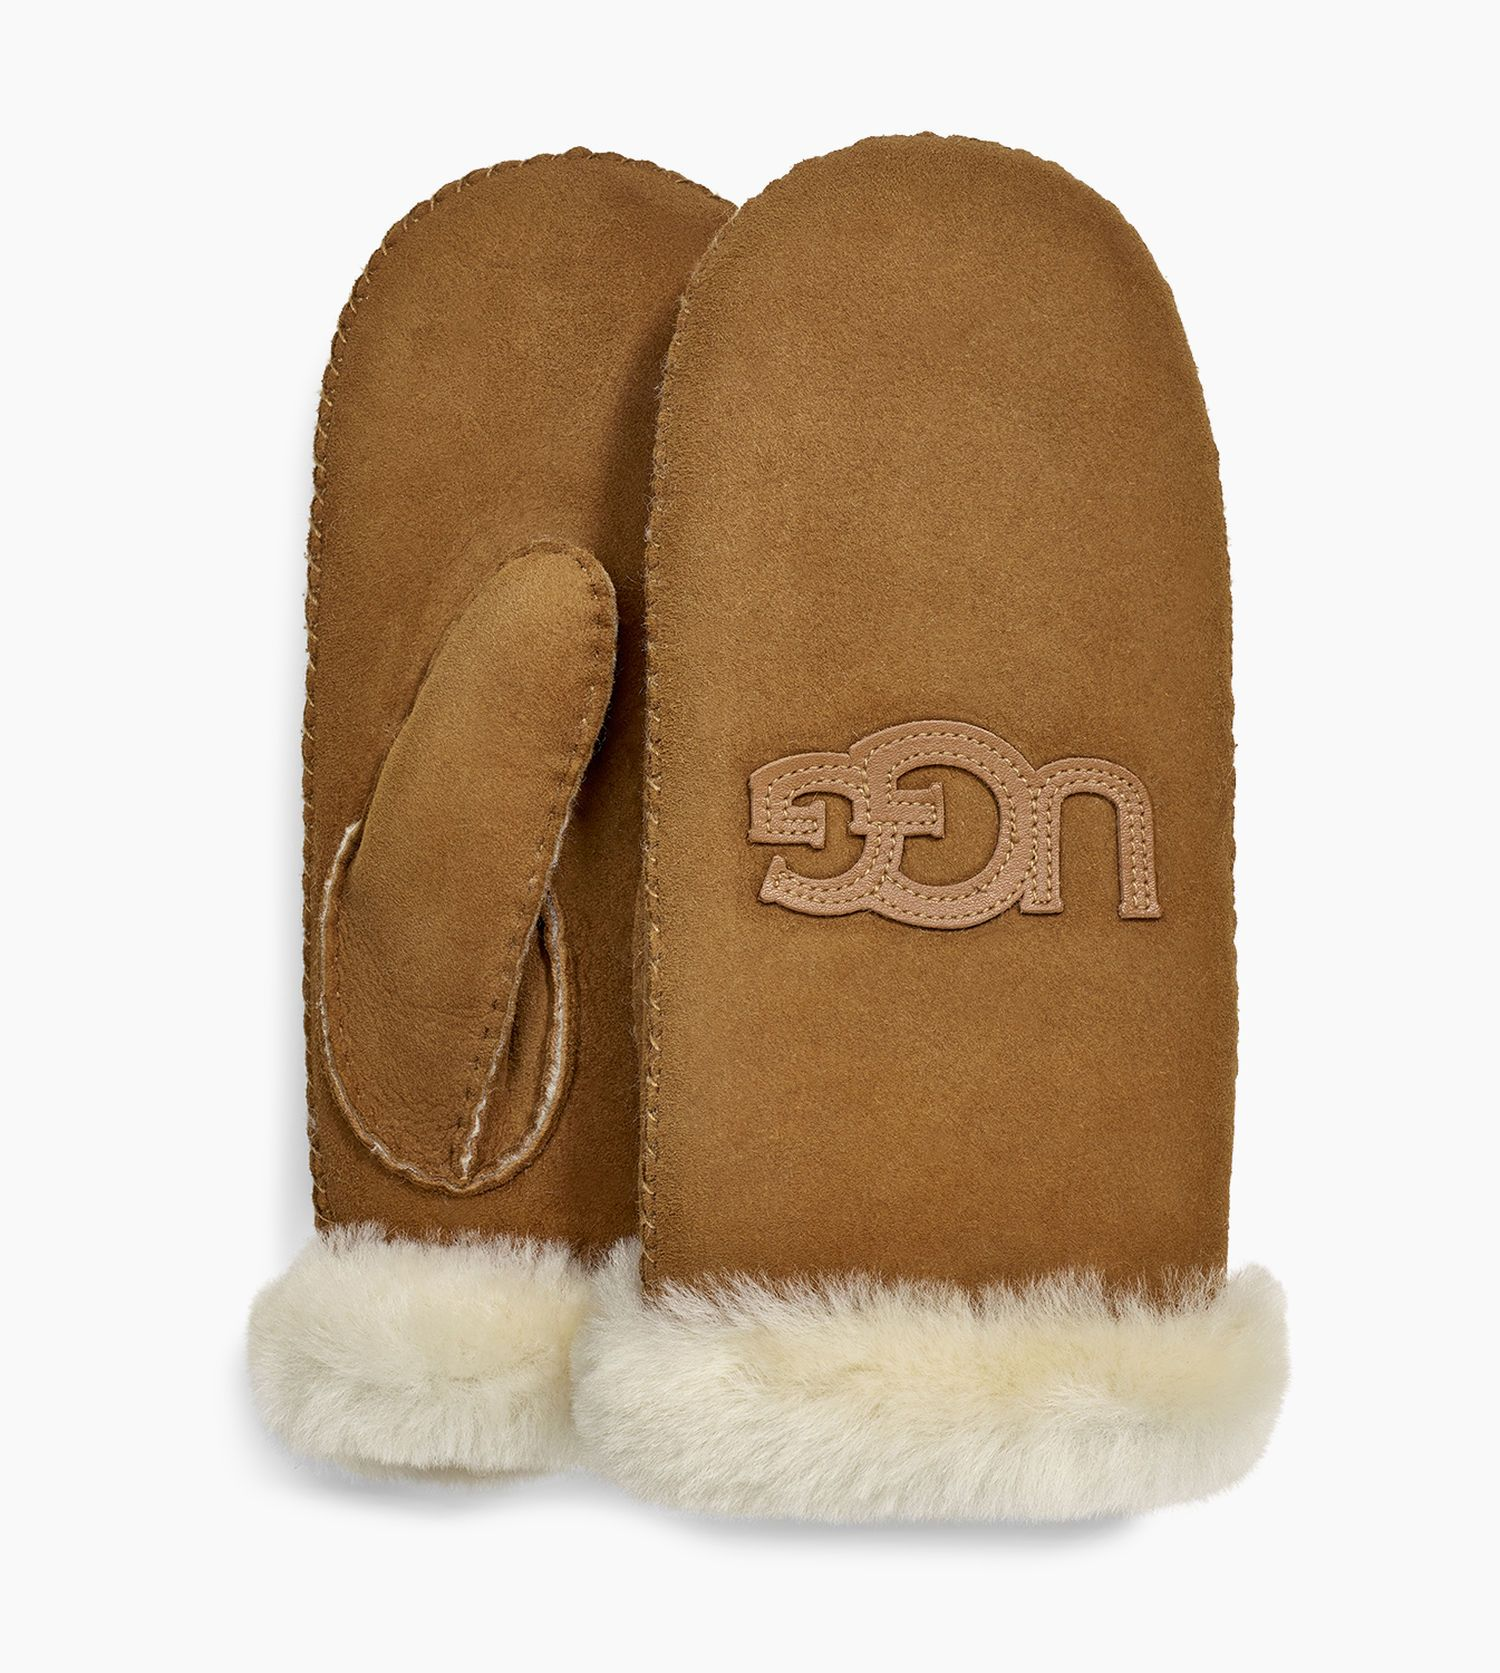 UGG Logo - UGG® Logo Glove for Women | UGG® UK